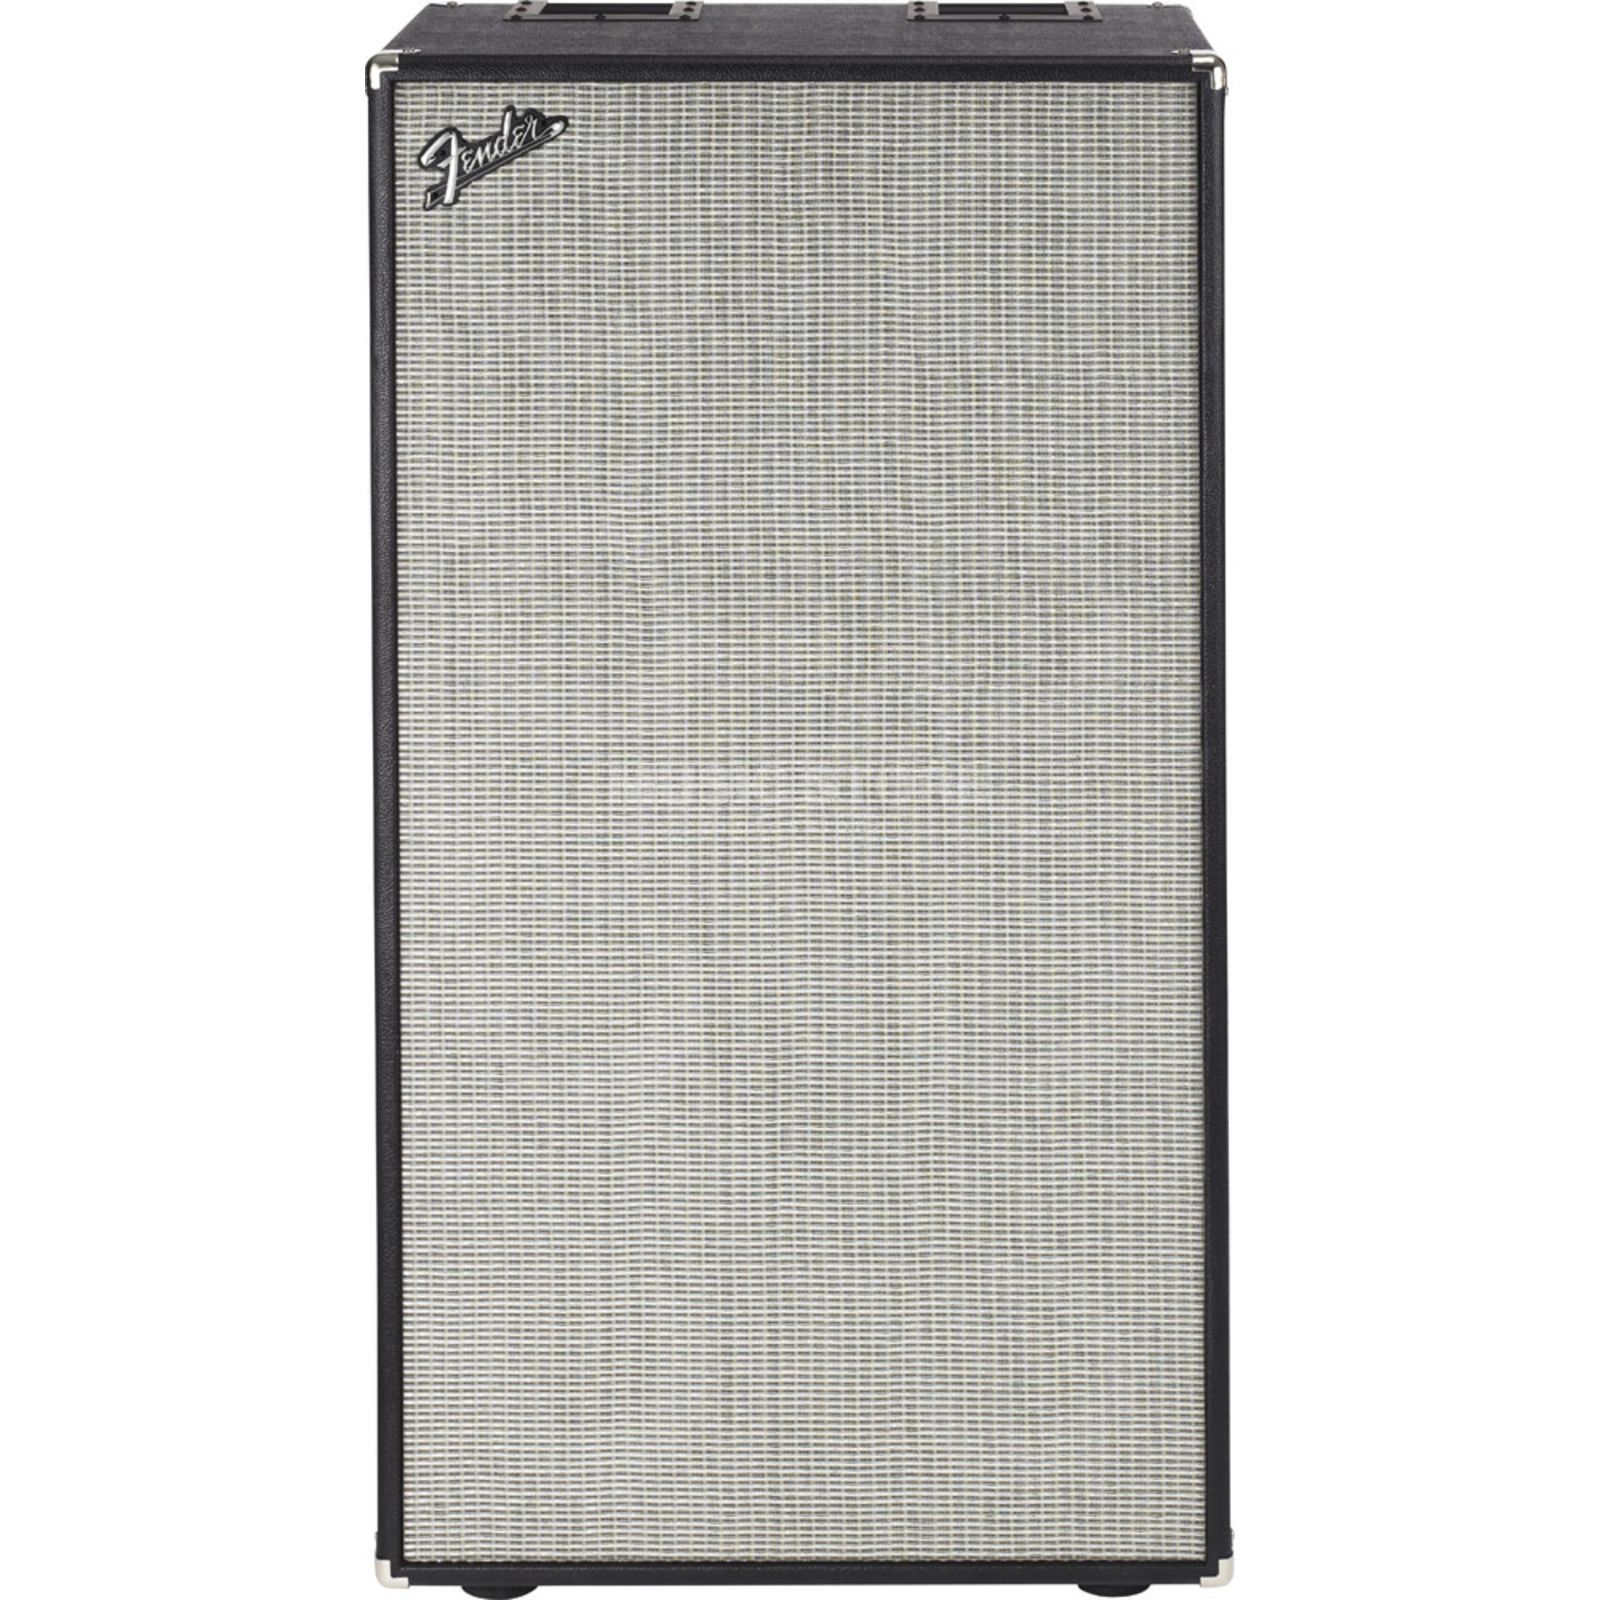 Fender Bassman 810 Neo Bass Guitar Am plifier Extension Cabinet   Изображение товара